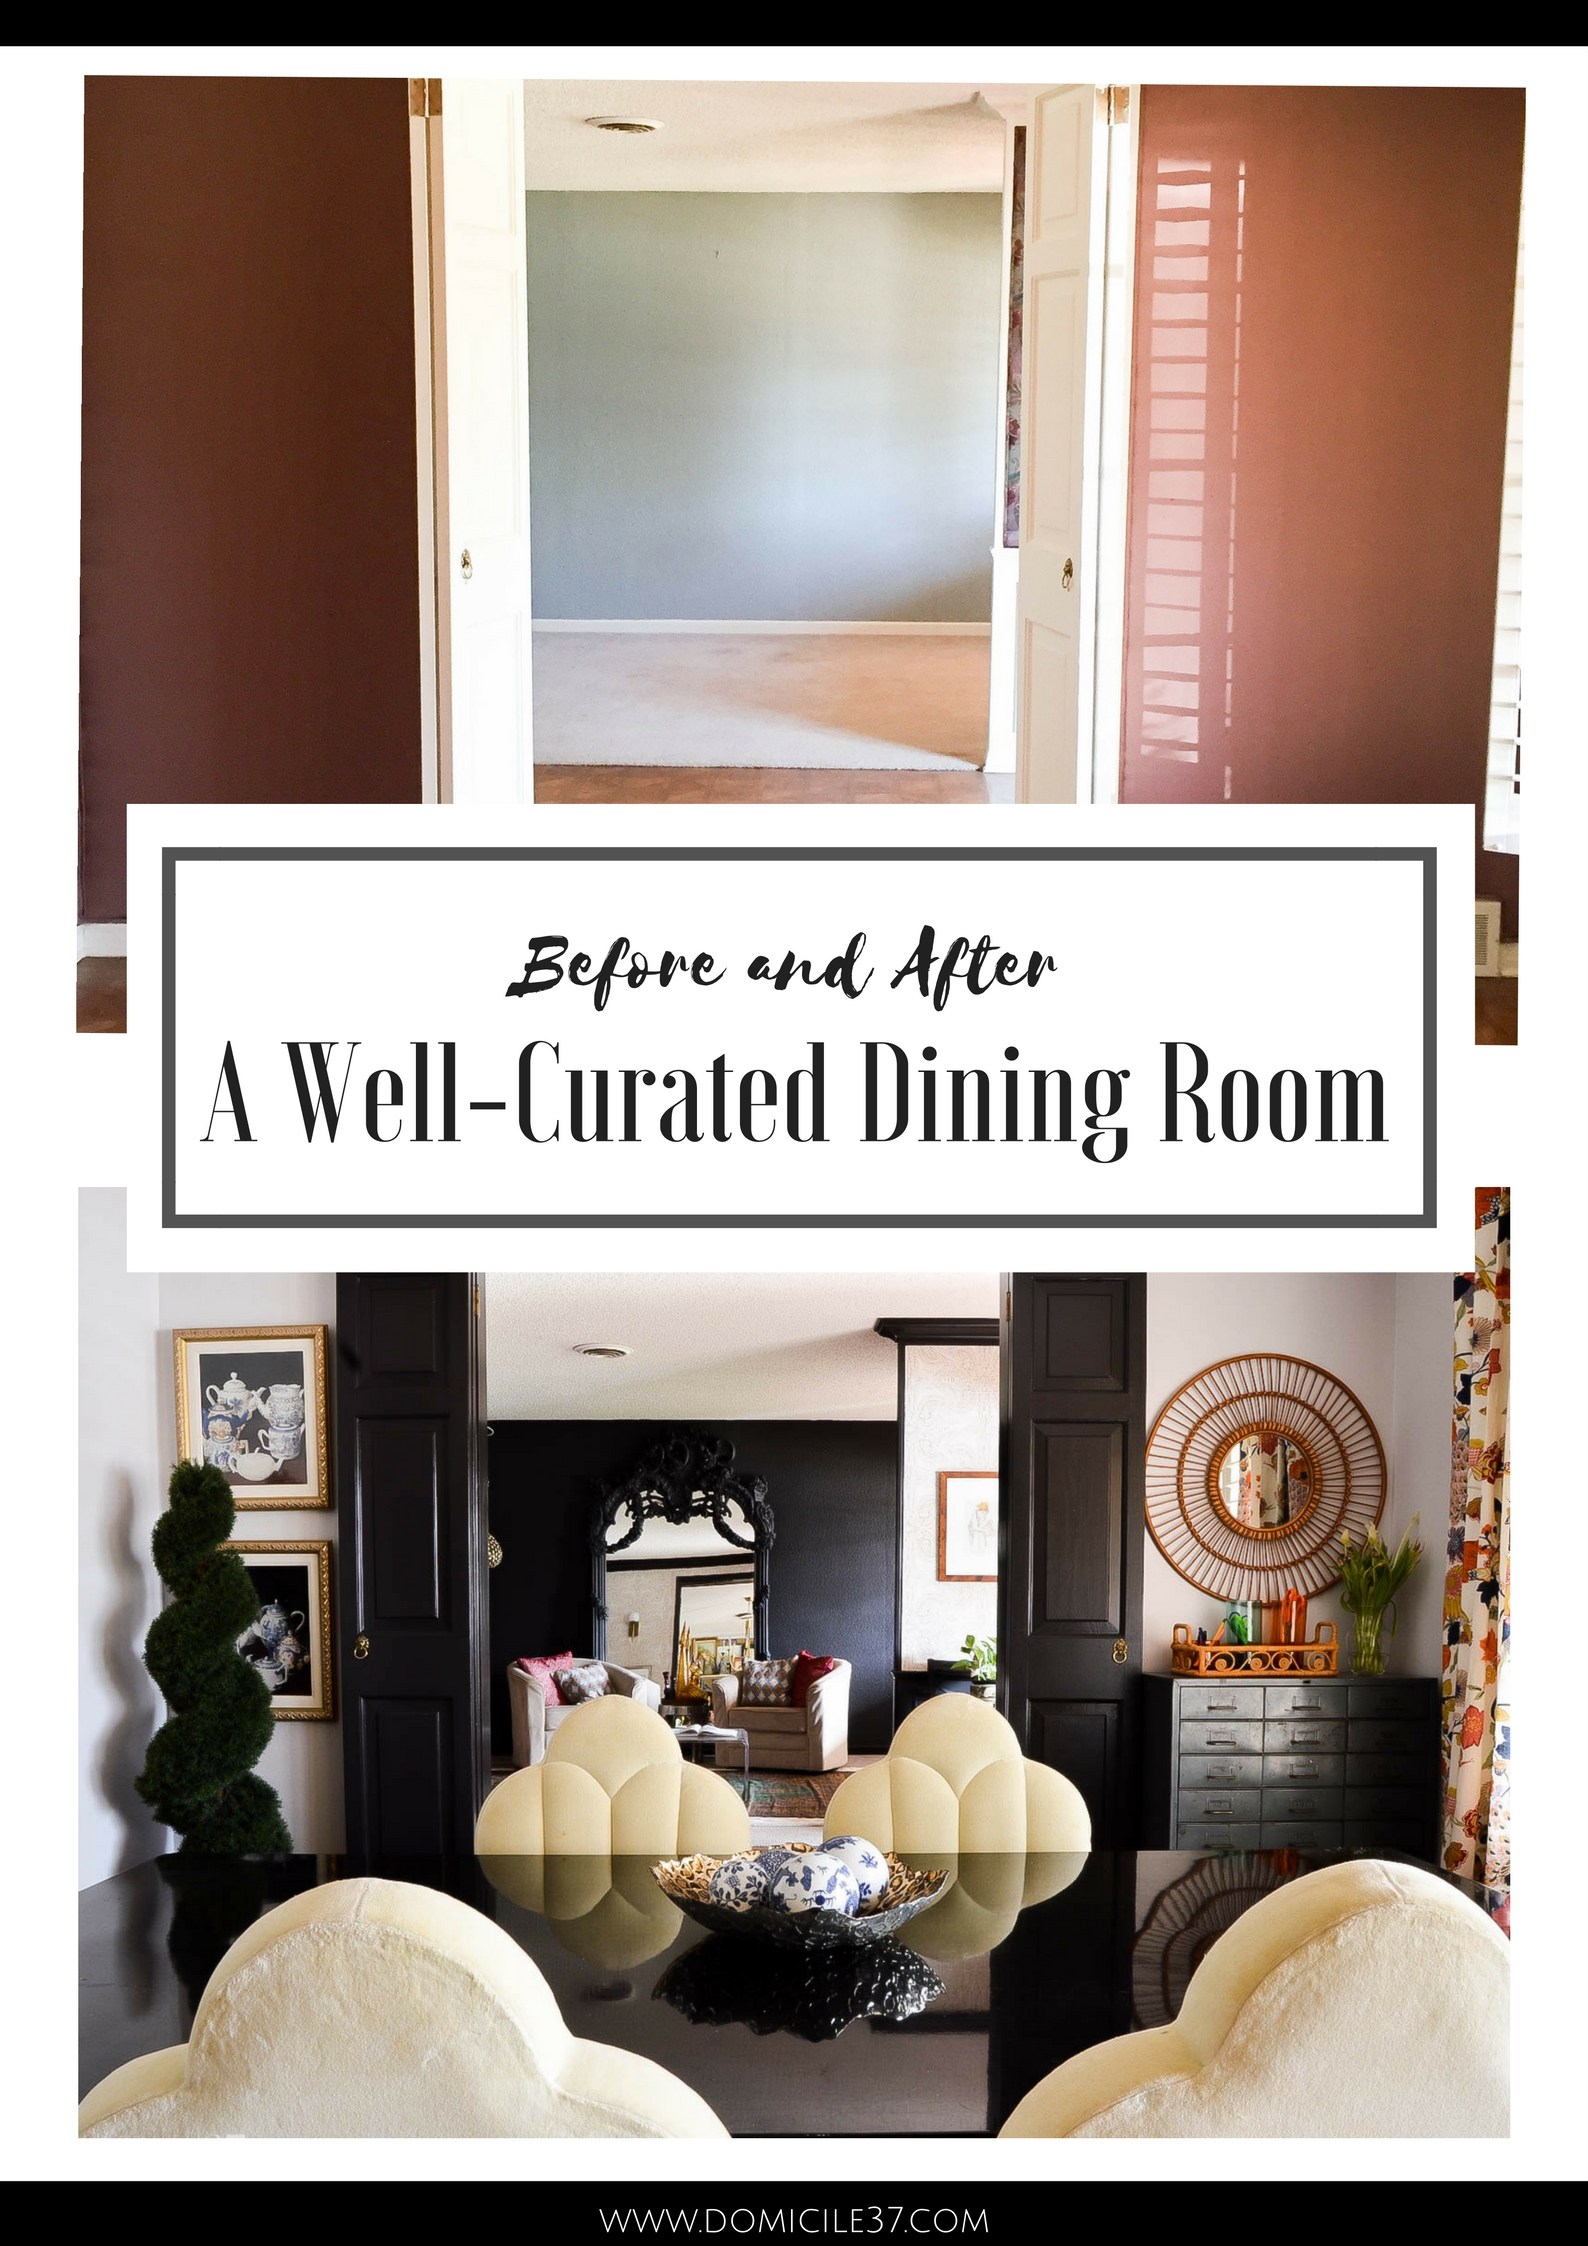 Curated dining room, eclectic dining room, black doors in dining room, vintage eclectic dining room